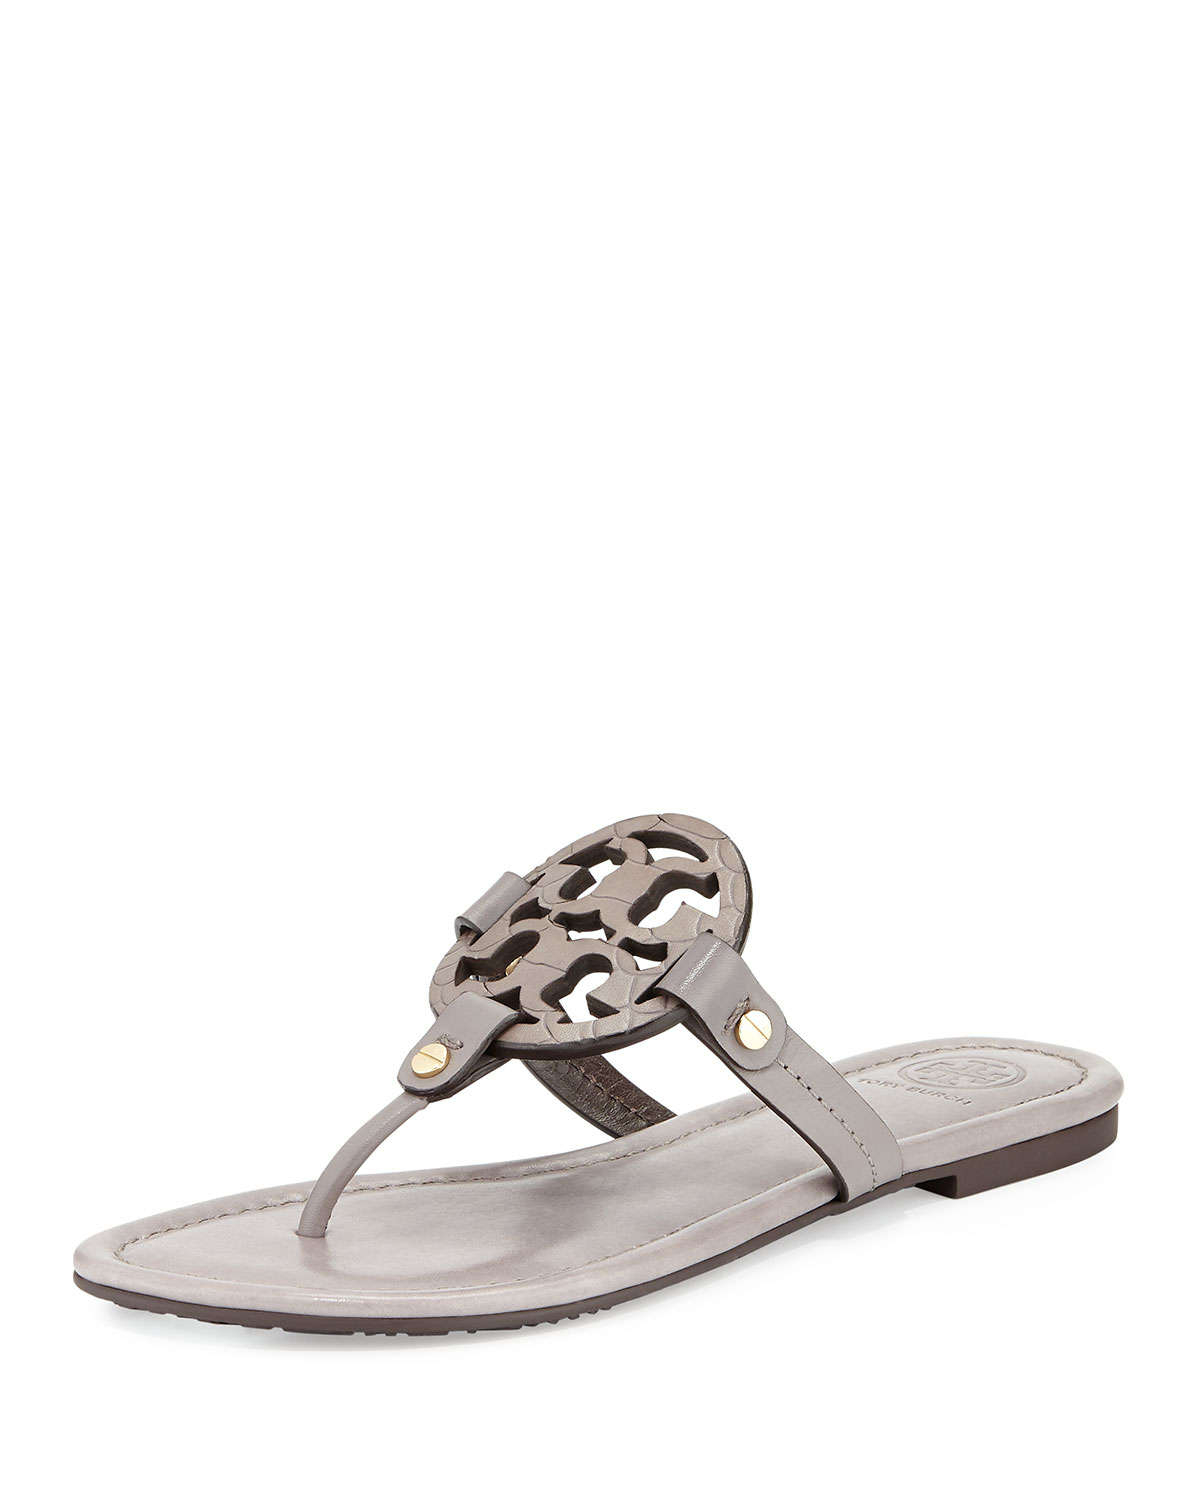 1b251c1624228 ... 2 Snake Embossed Medallion Sandals Natural 185 (Compare Elsewhere 225)  SHIPS  Lyst - Tory Burch Miller Logo Flat Sandal in Gray crazy price 40d65  f3ce4 ...